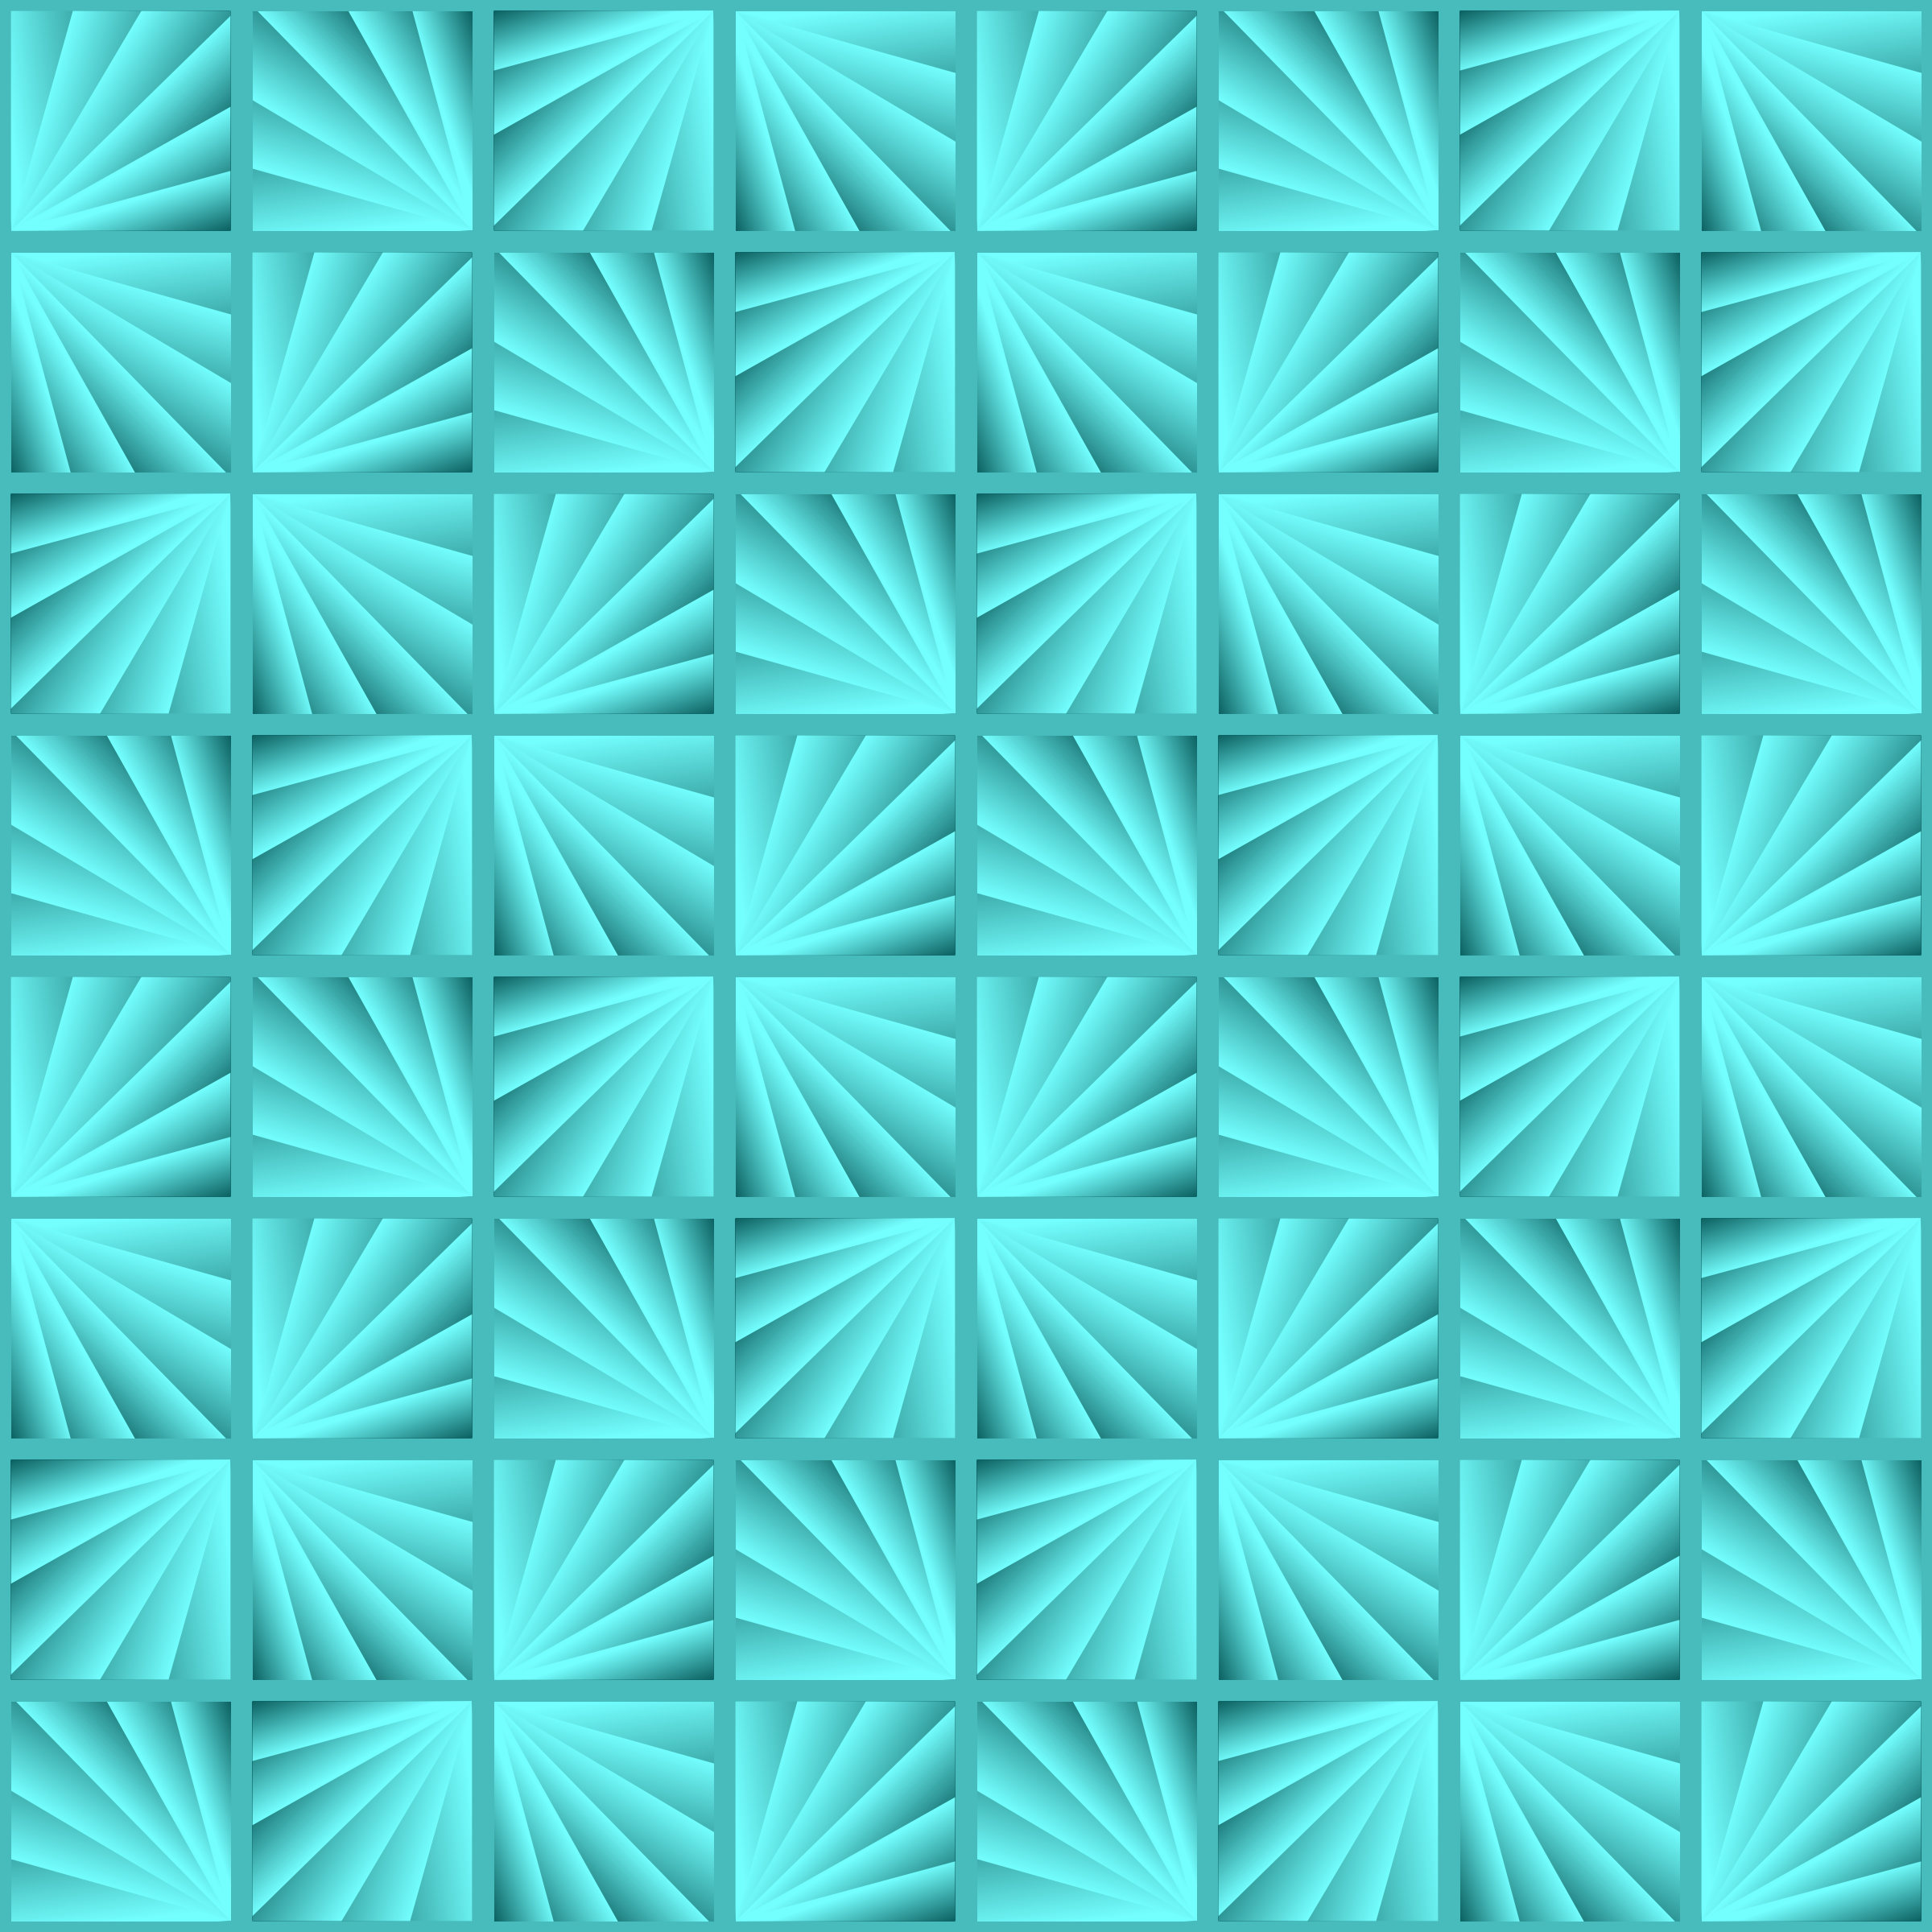 Background pattern 223 (colour 5) by Firkin